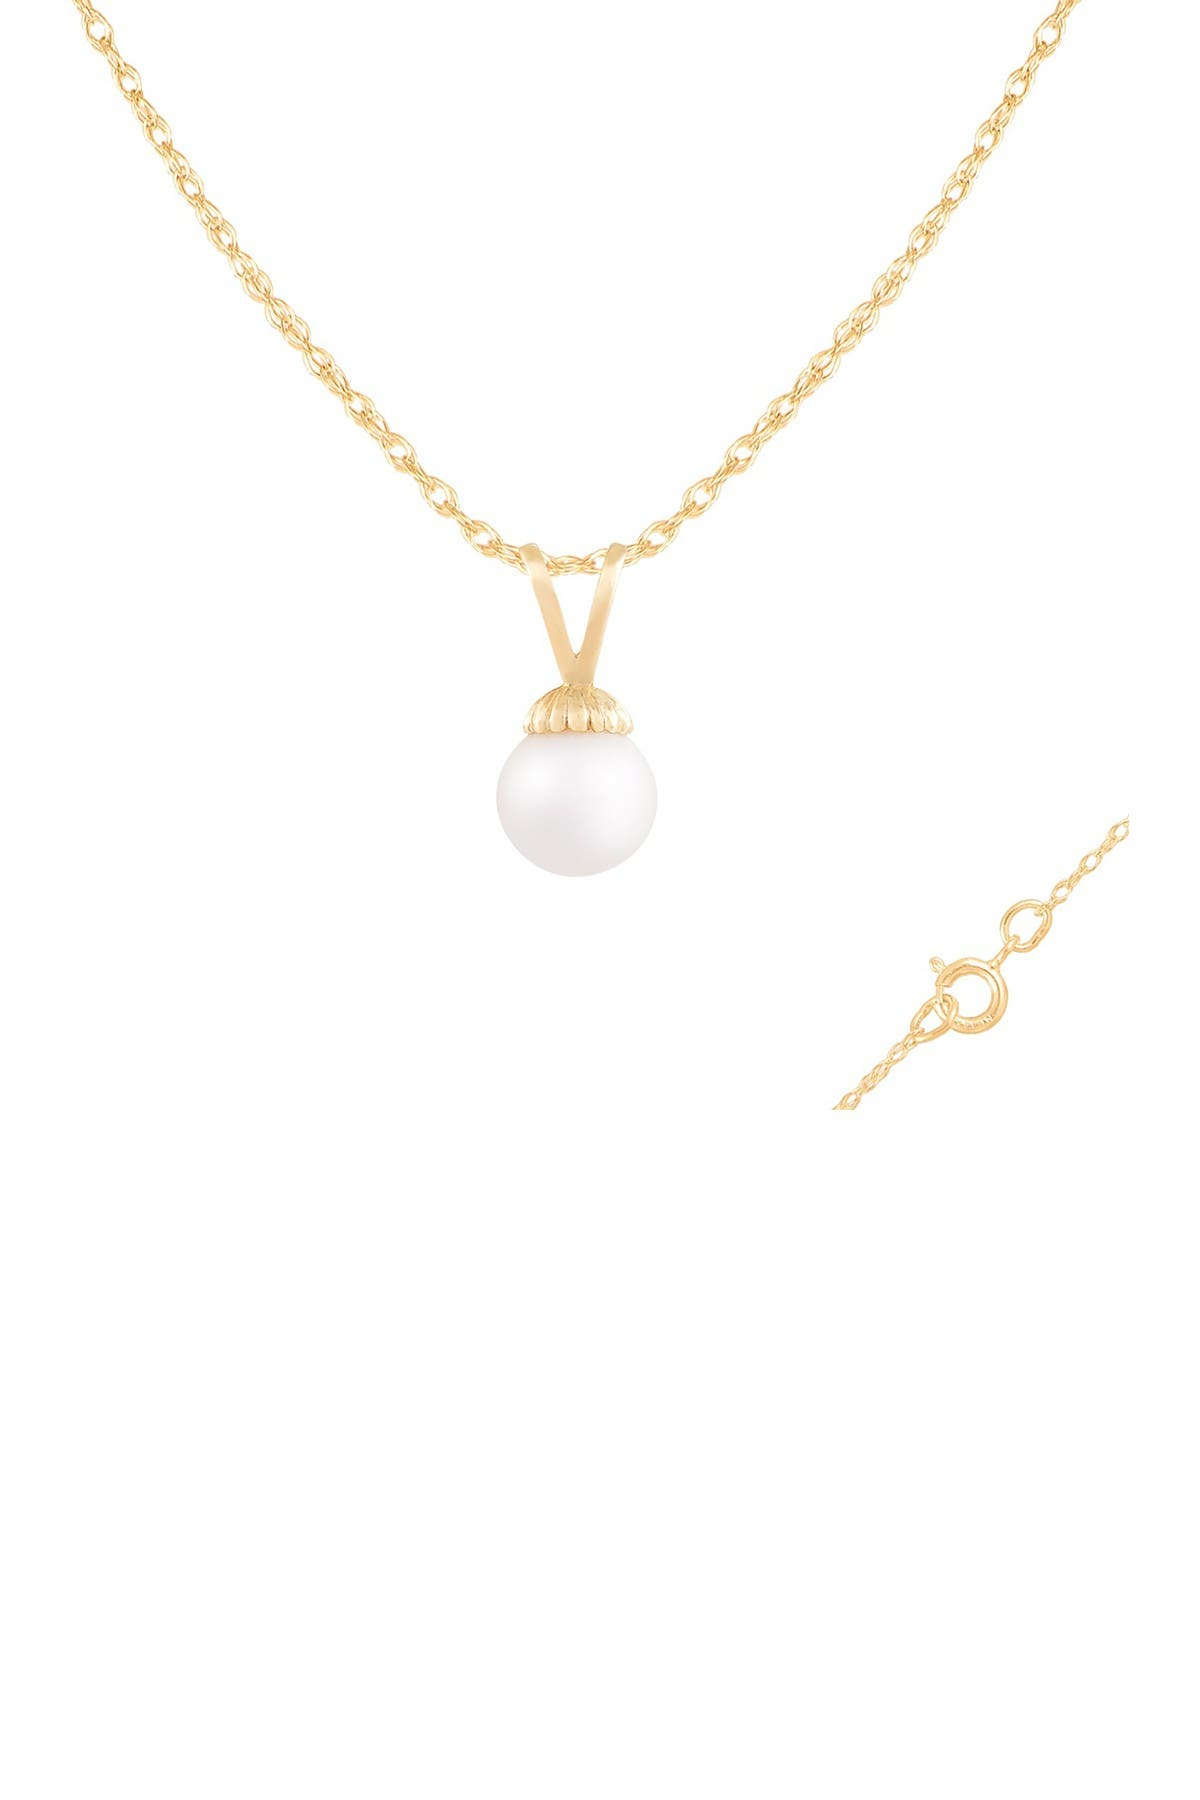 Image of Splendid Pearls 14K Yellow Gold 7-7.5mm Freshwater Pearl Pendant Necklace